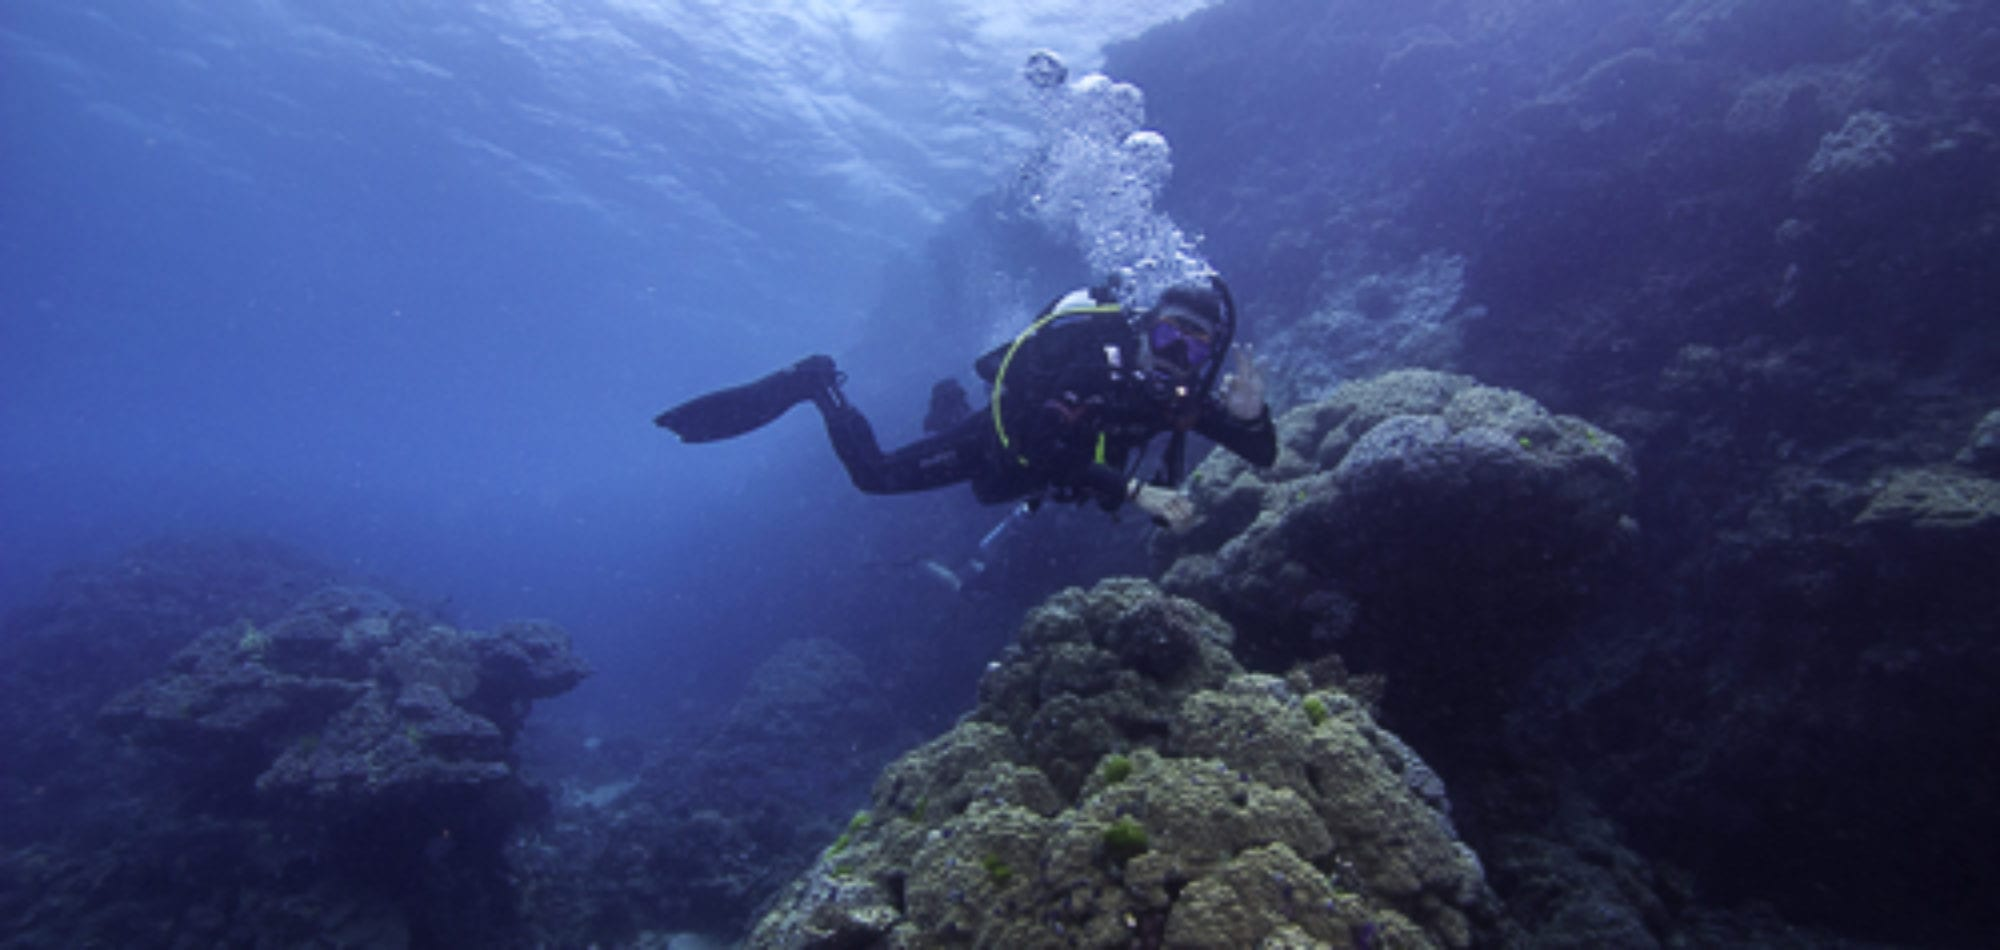 Divers on the Great Barrier Reef - Whitsunday Islands